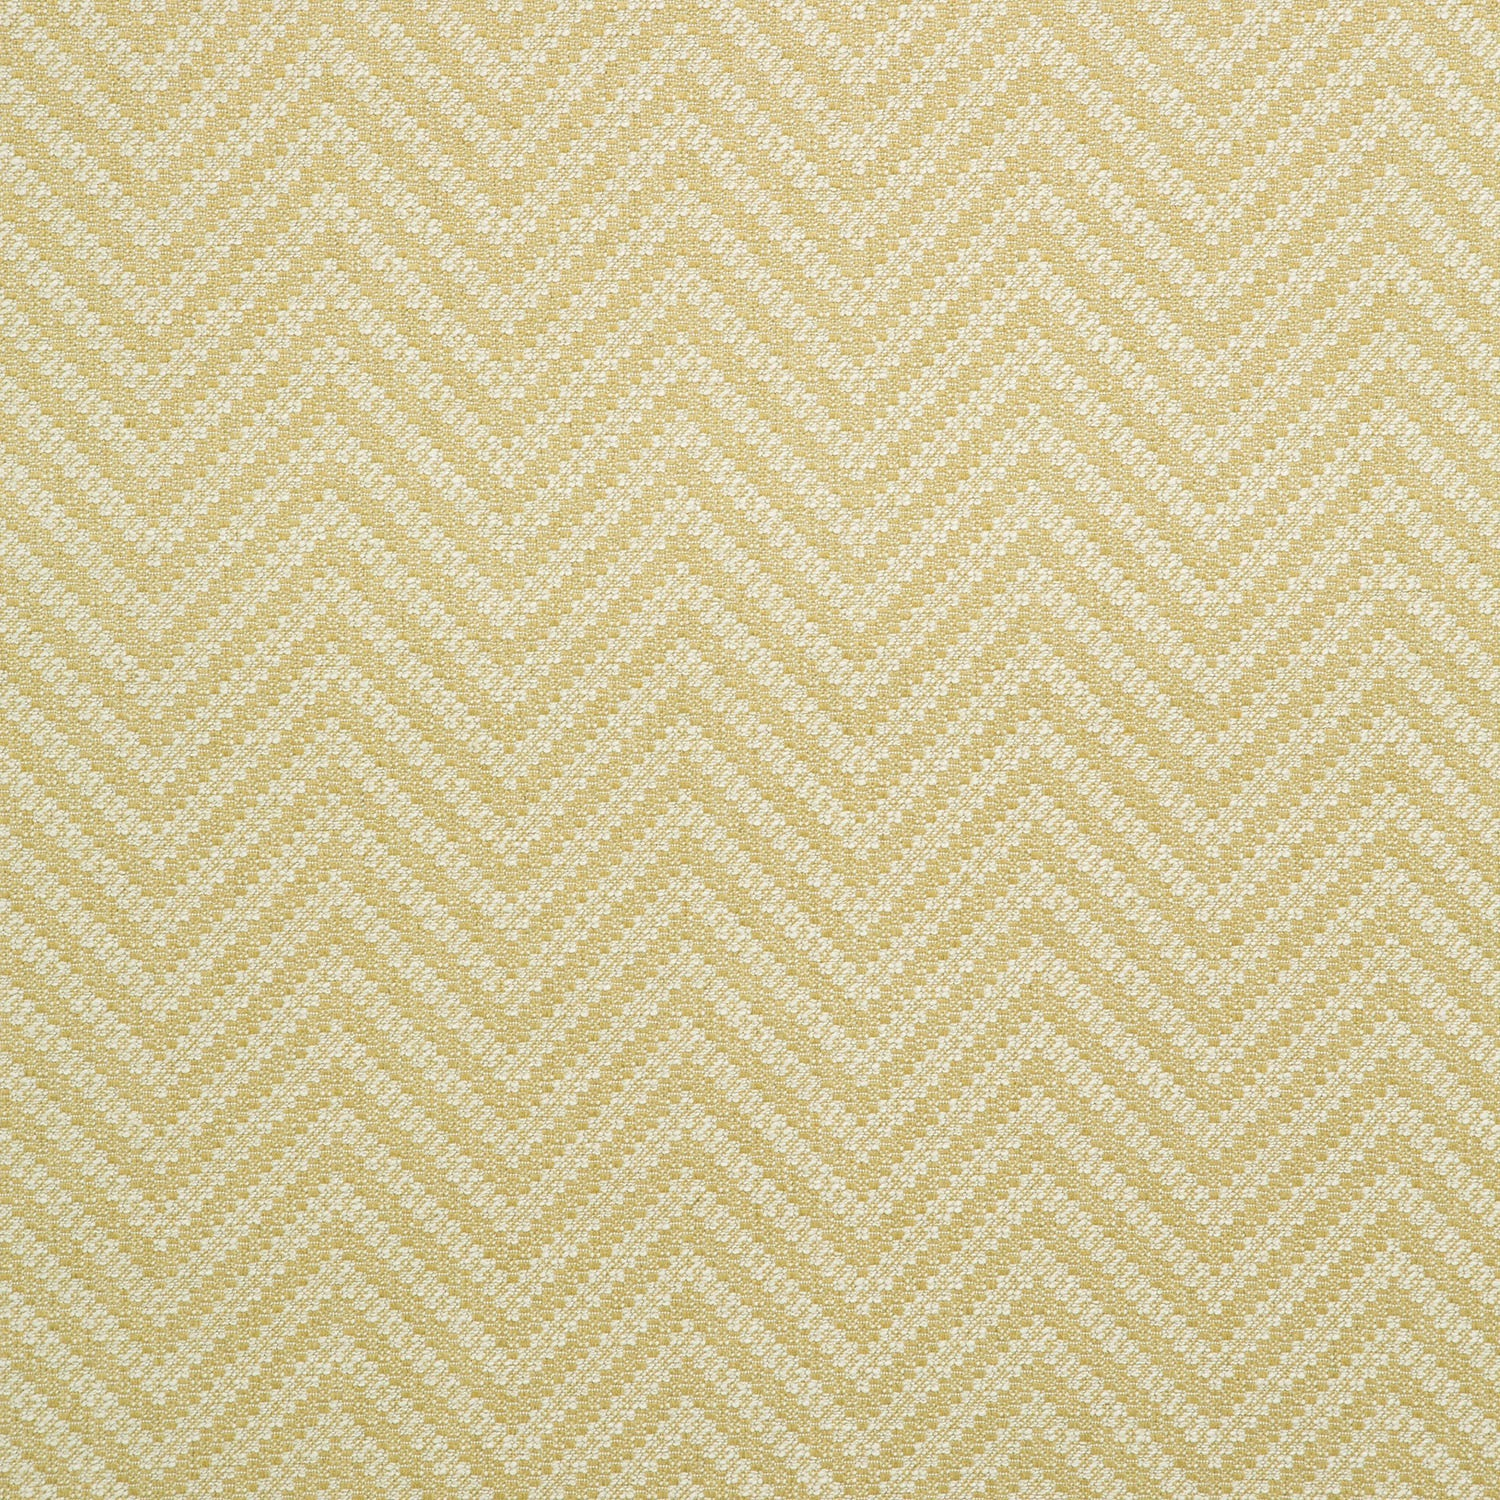 Fabric swatch of a light yellow and neutral herringbone weave fabric for curtains and upholstery